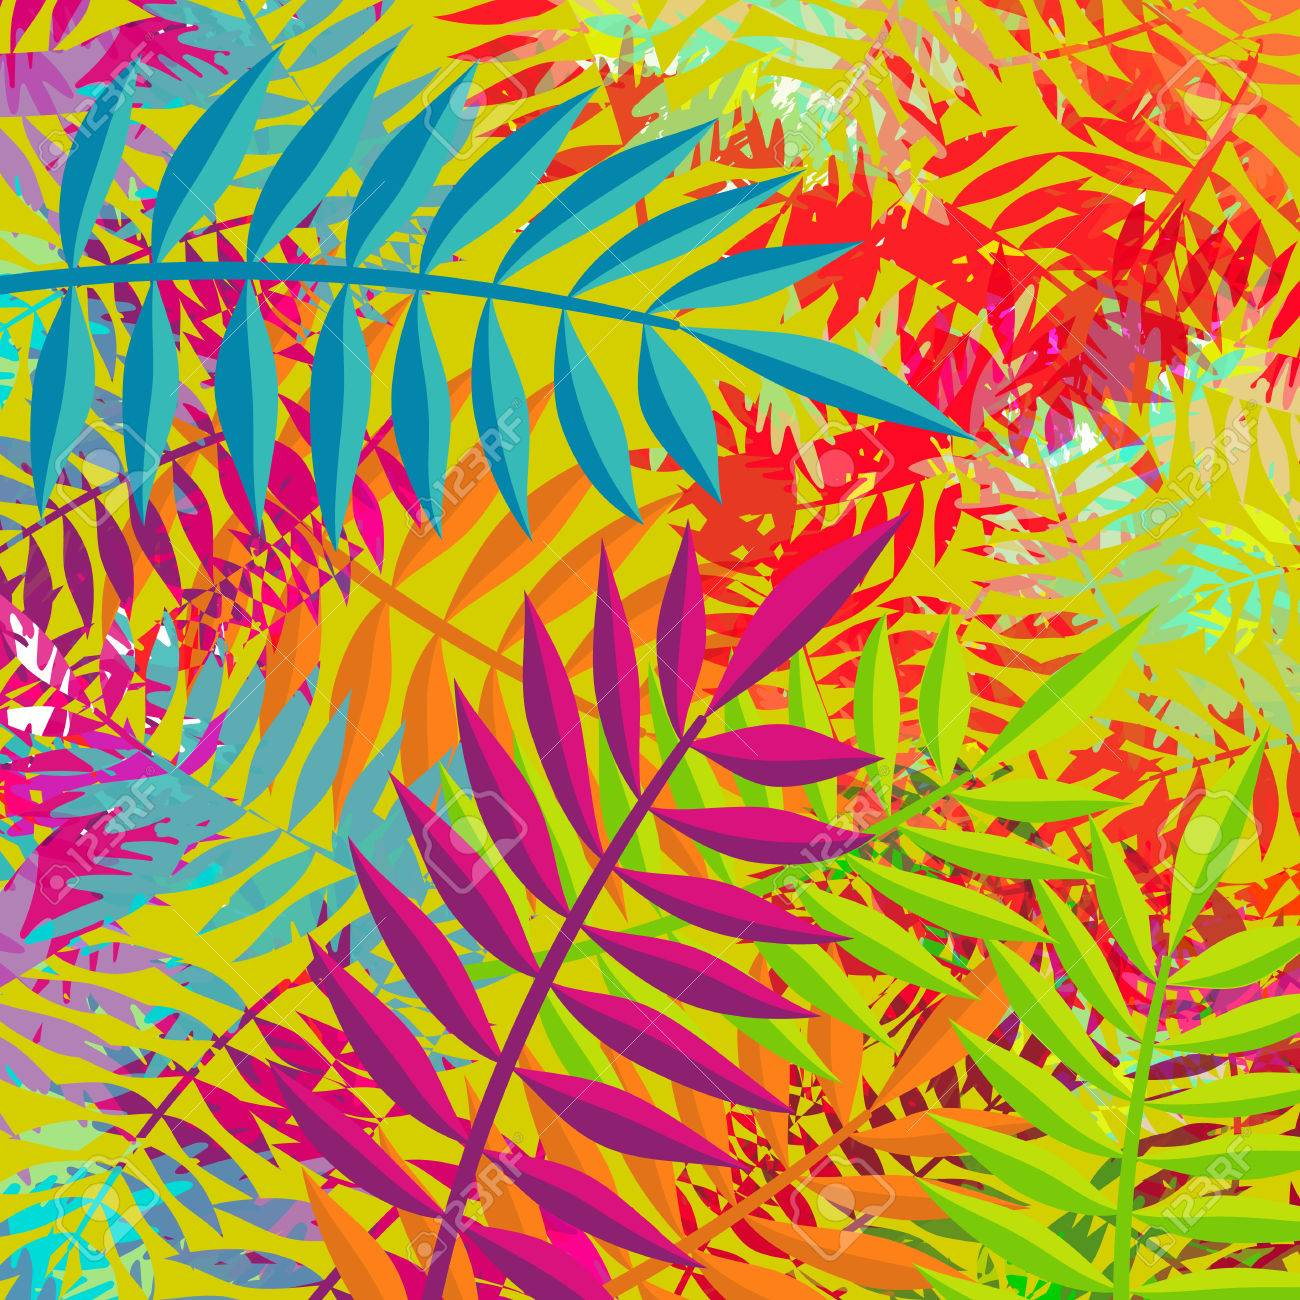 Tropical Summer Background Vibrant Color Palette Art With Jungle